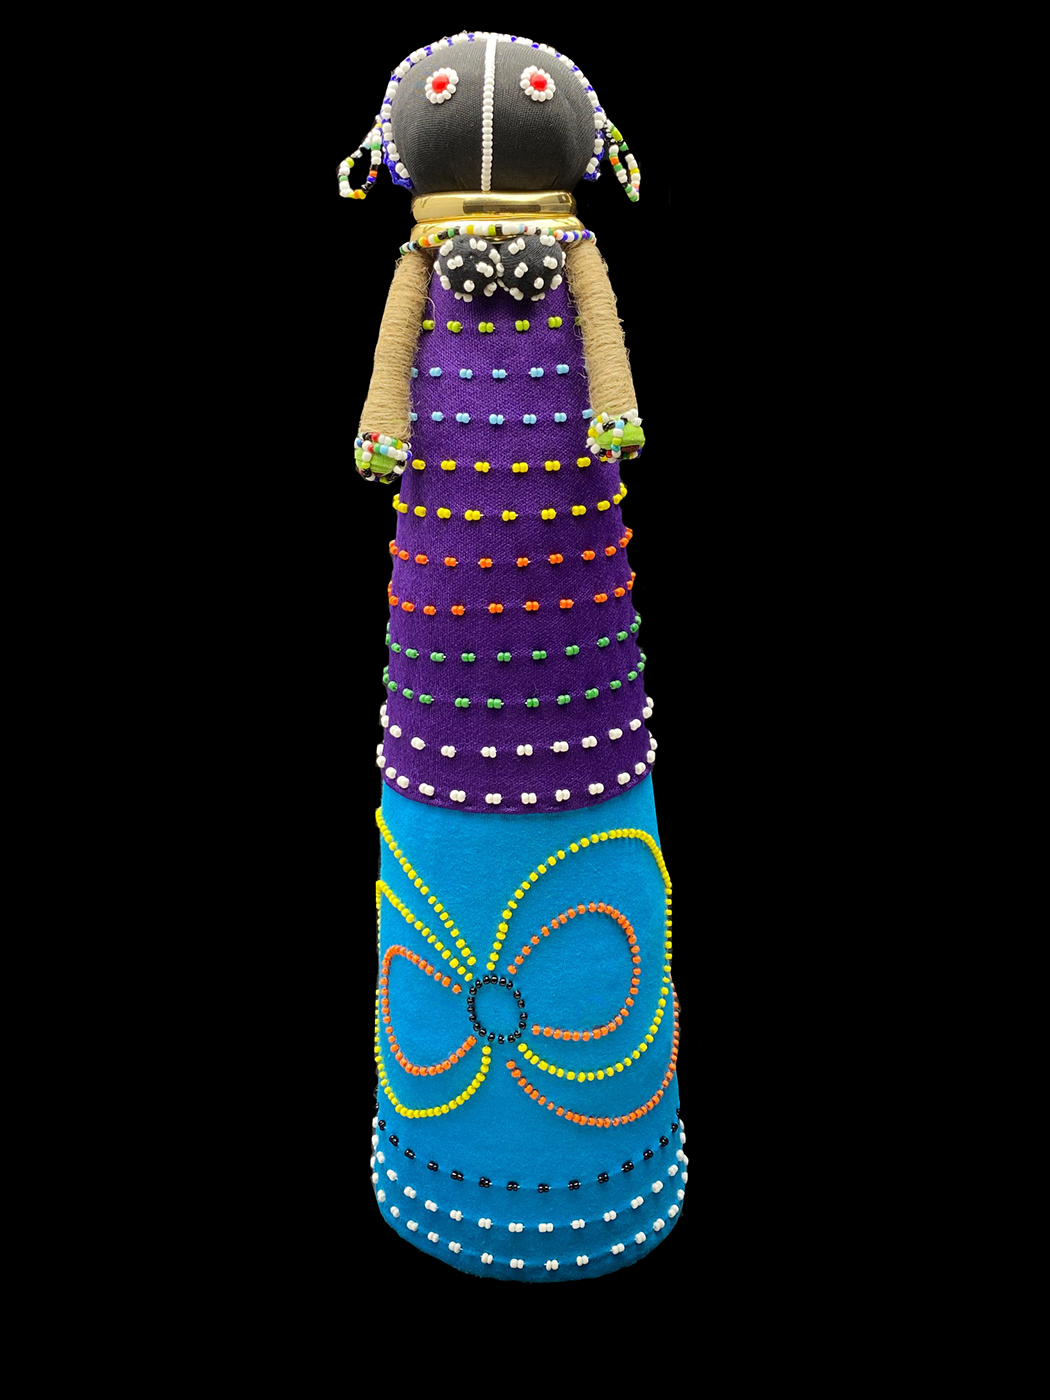 Tall Ceremonial Courtship Doll - Ndebele people, South Africa